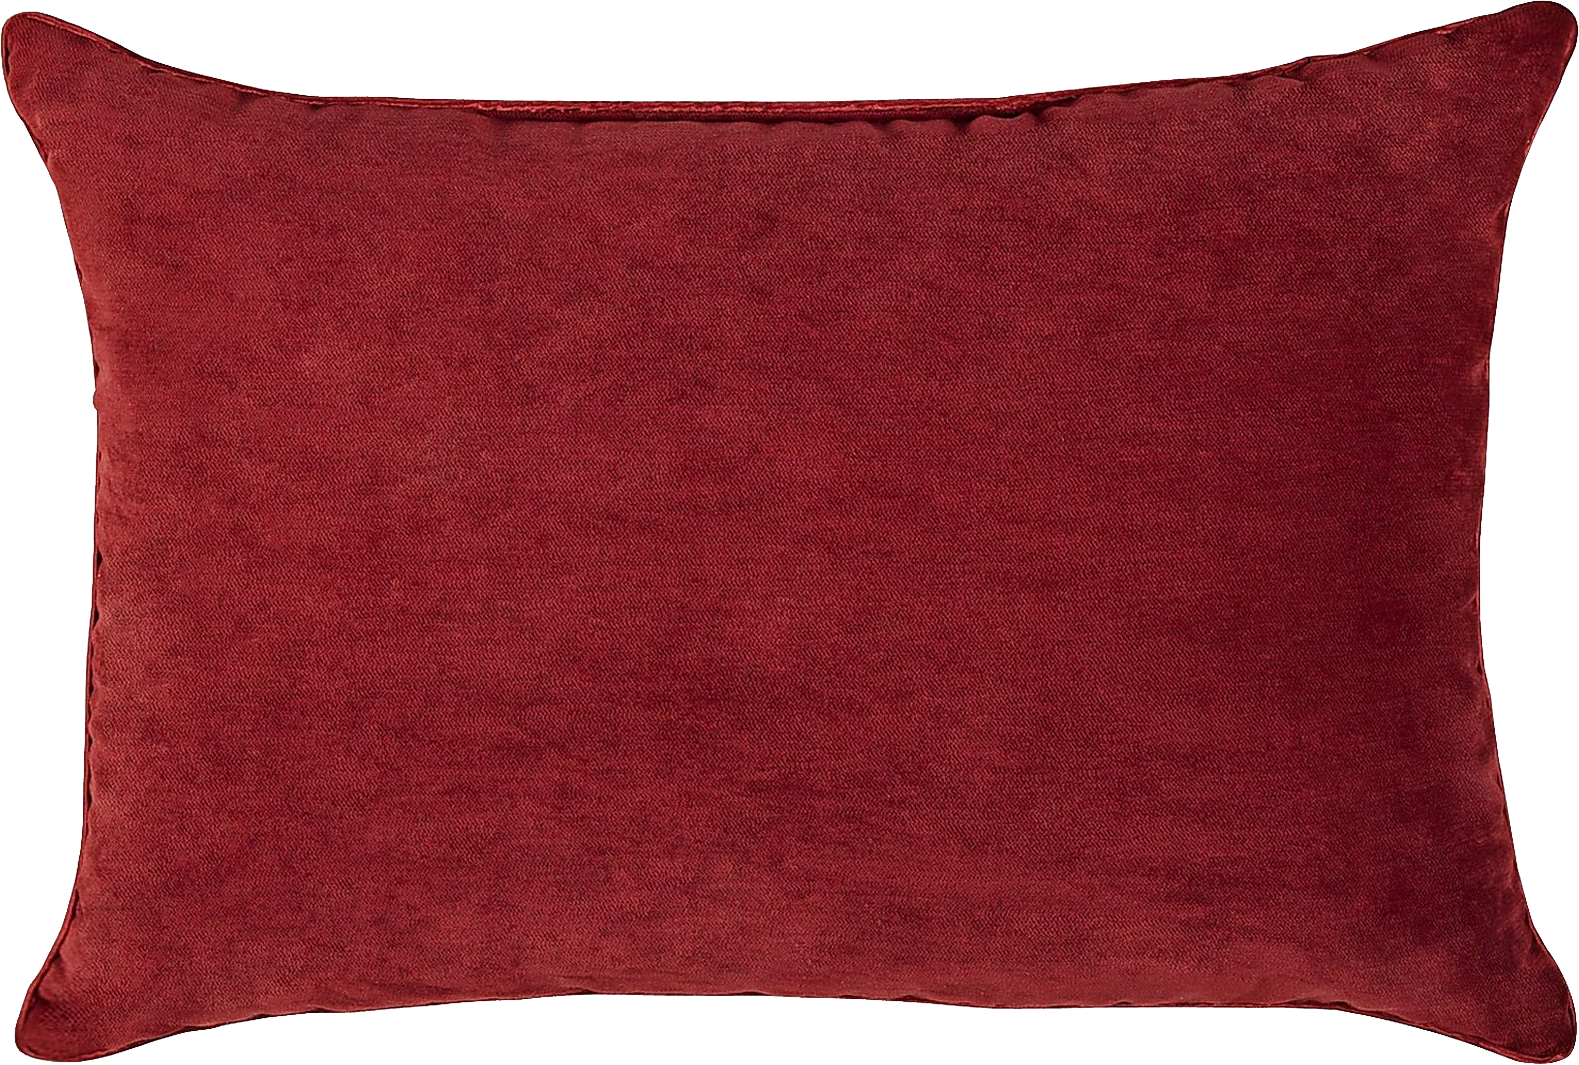 Pillow png. Images free download